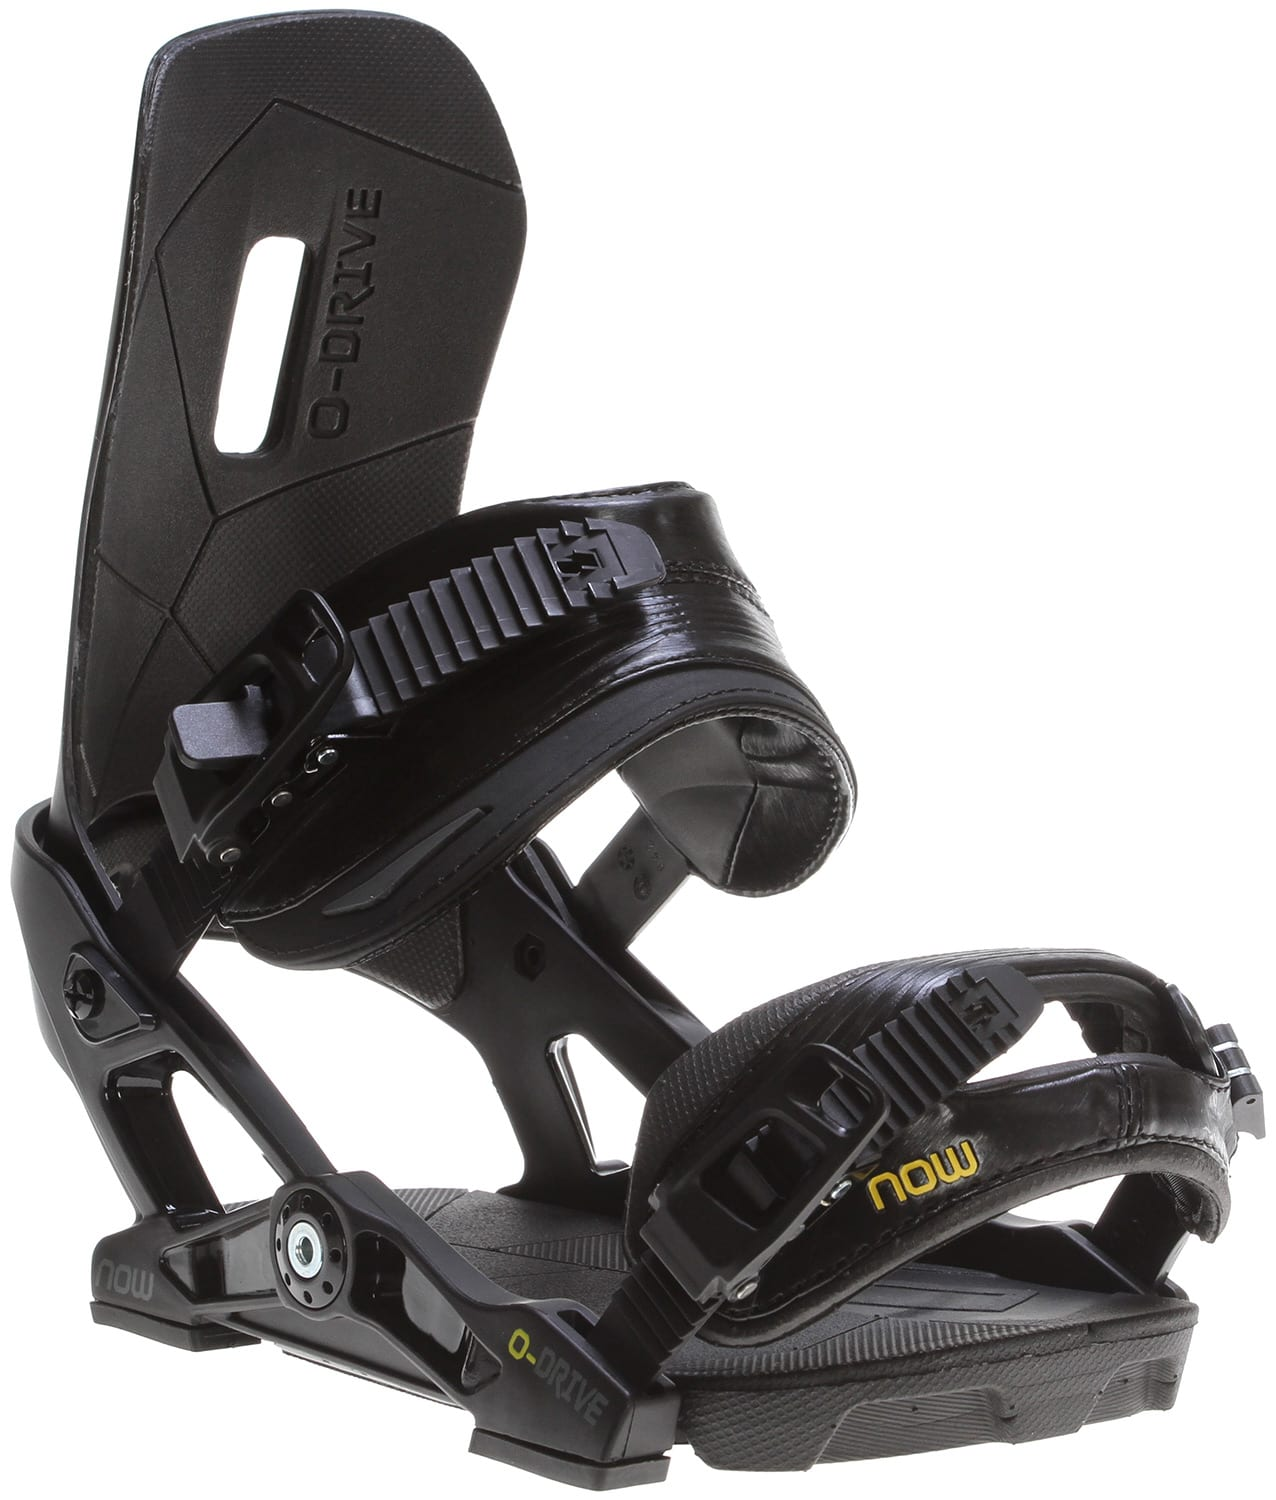 Now Overdrive Snowboard Bindings